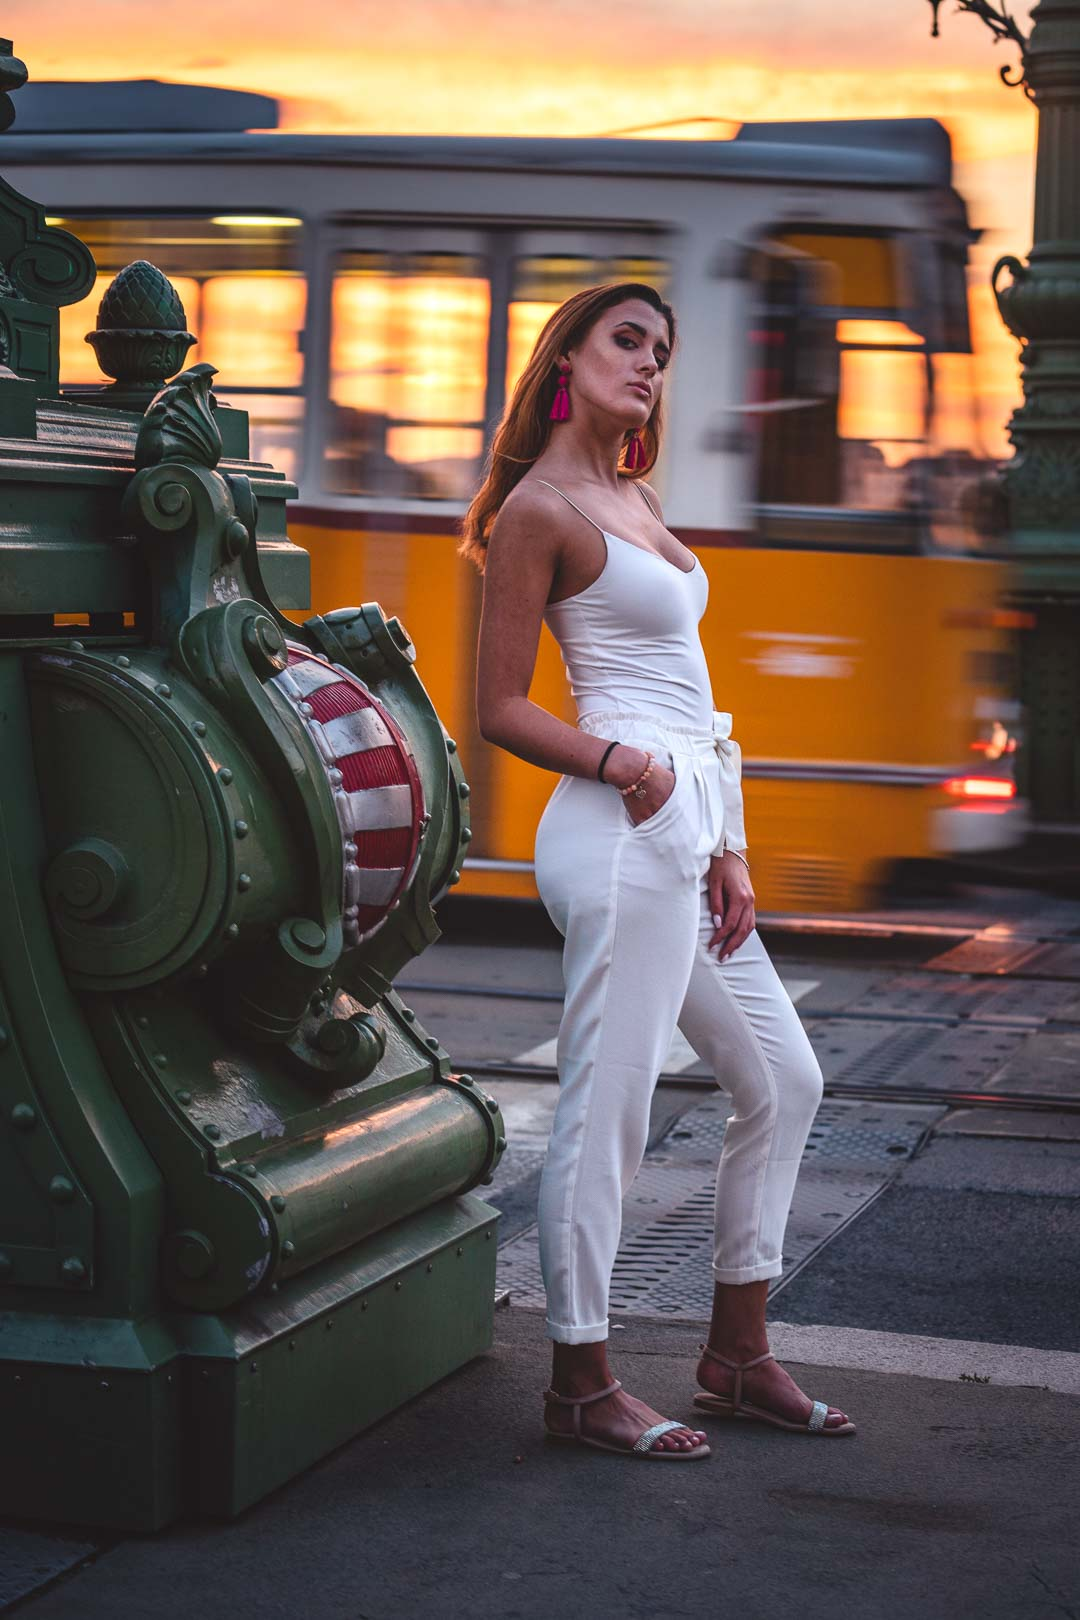 Hungarian woman in white in front of a rolling tram